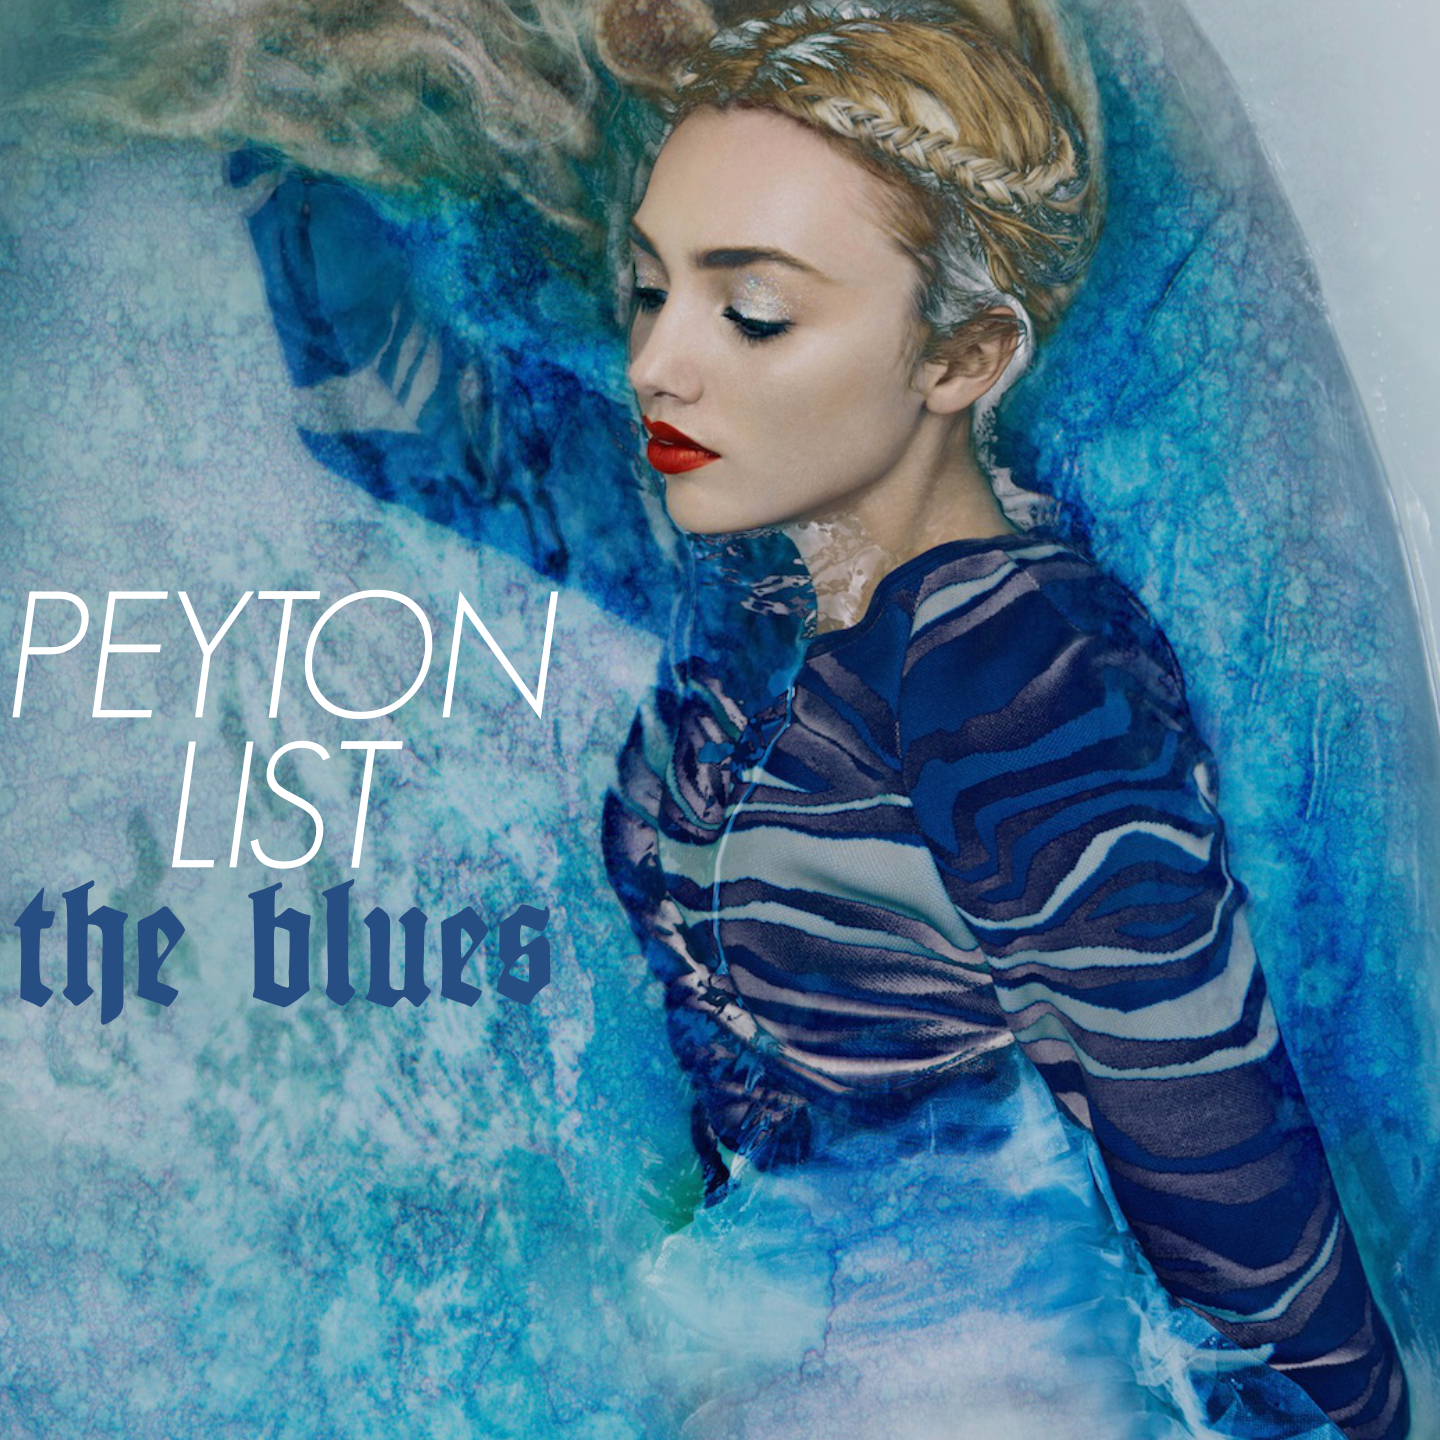 The Blues (Peyton List album)